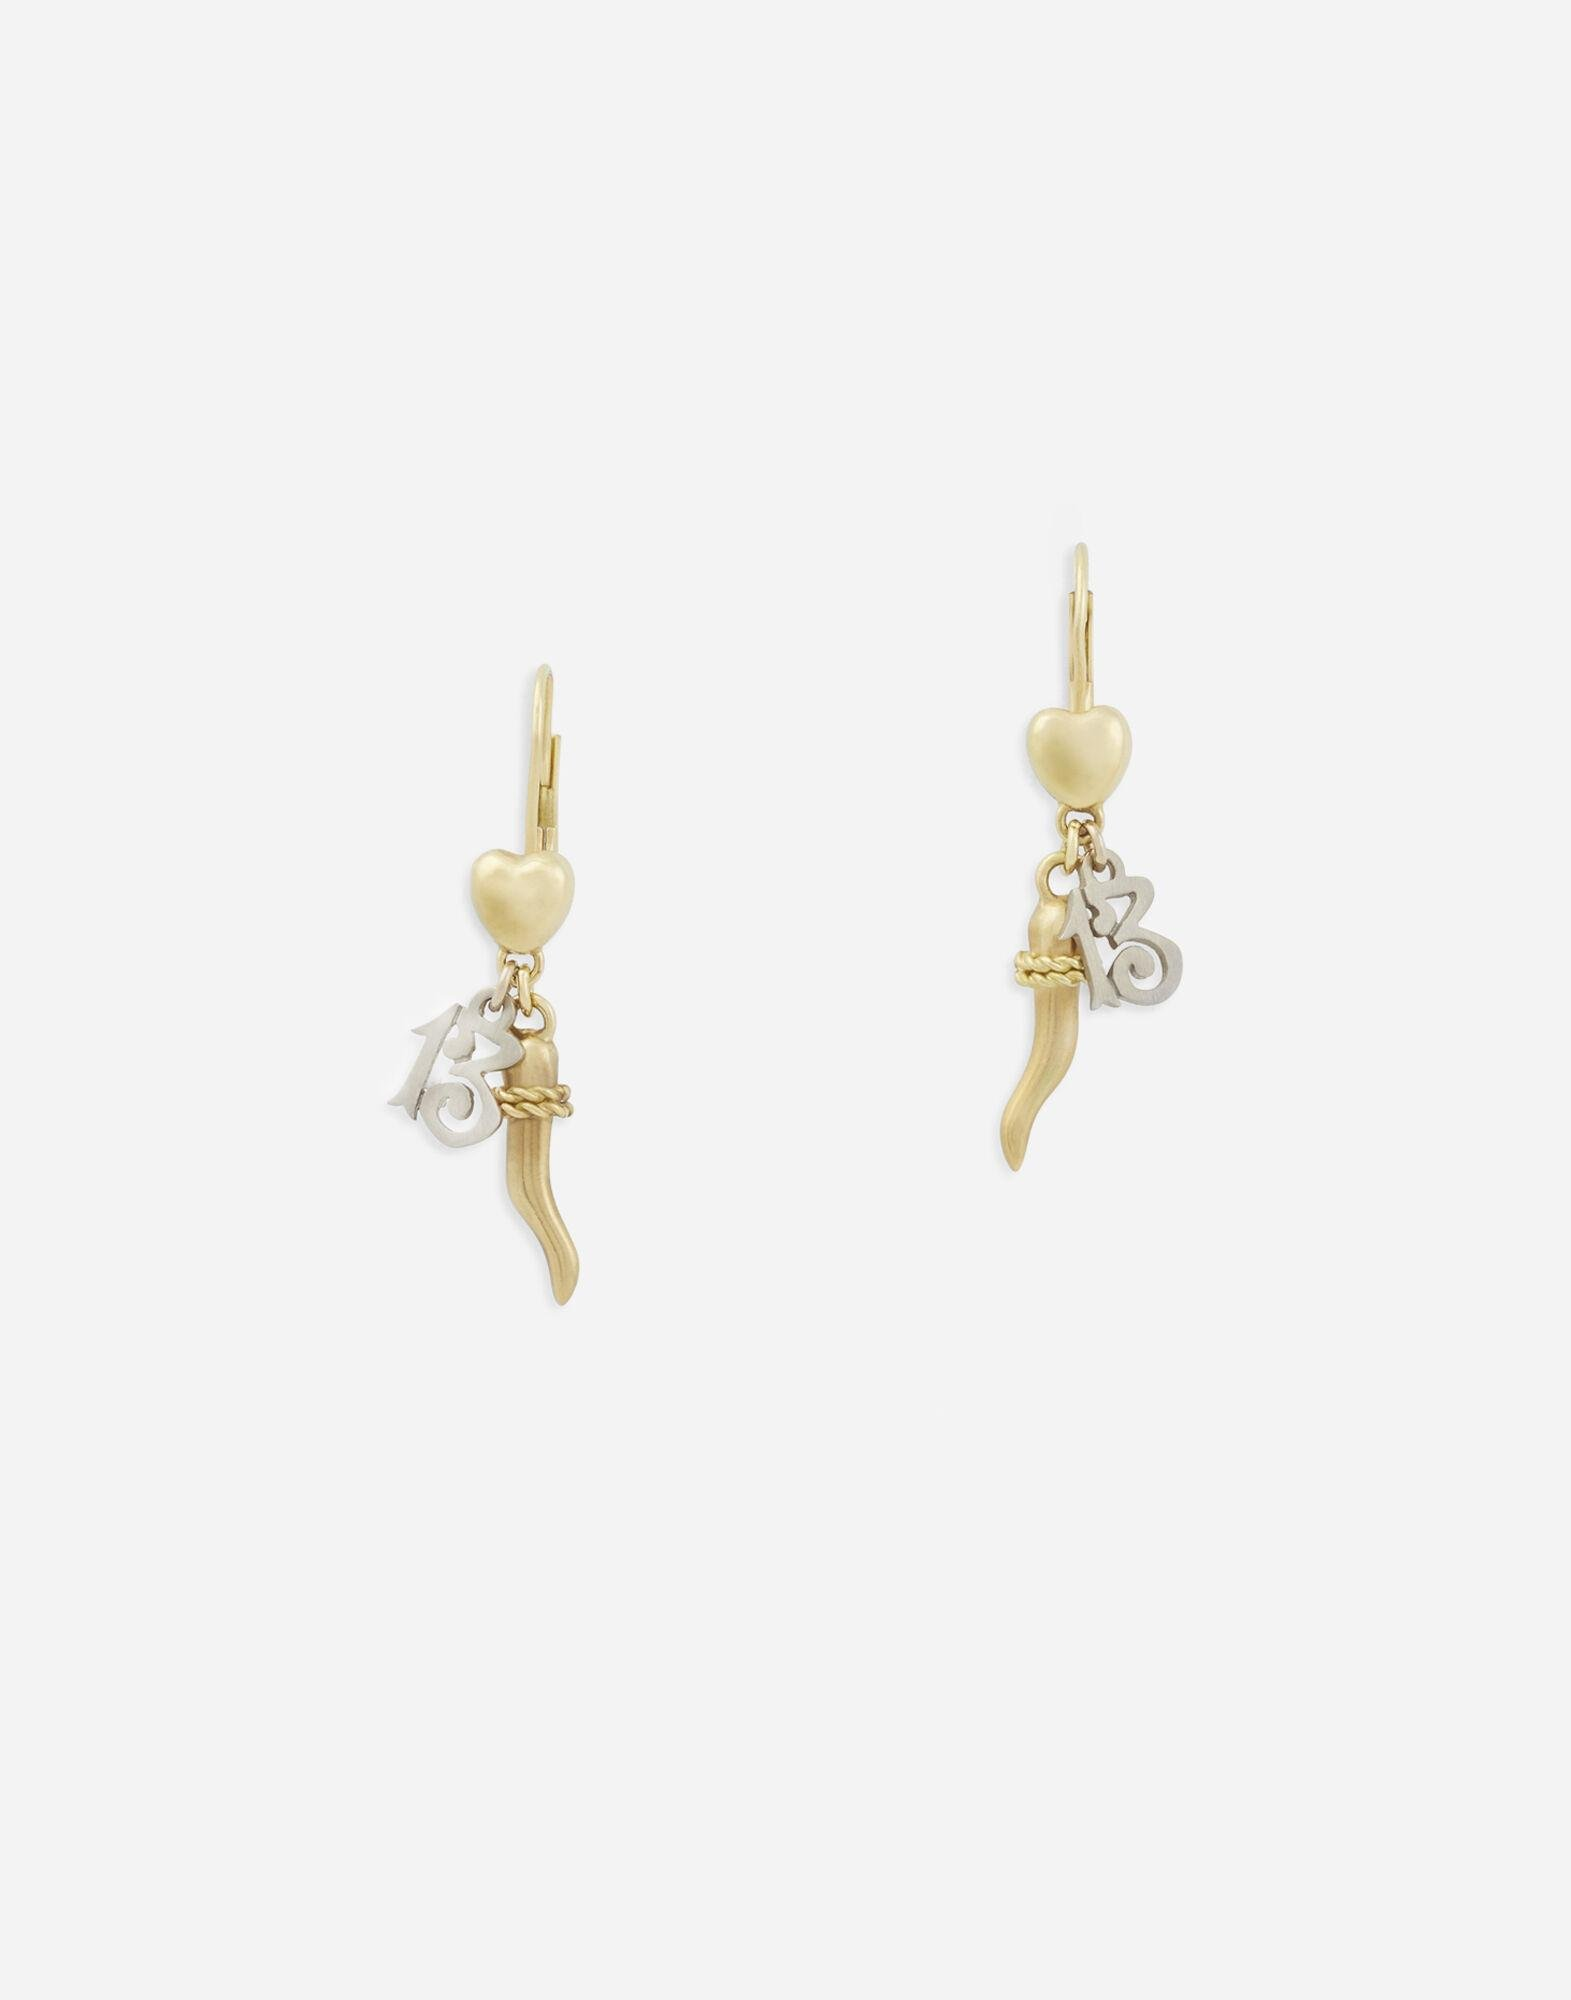 Family earrings in yellow and white gold